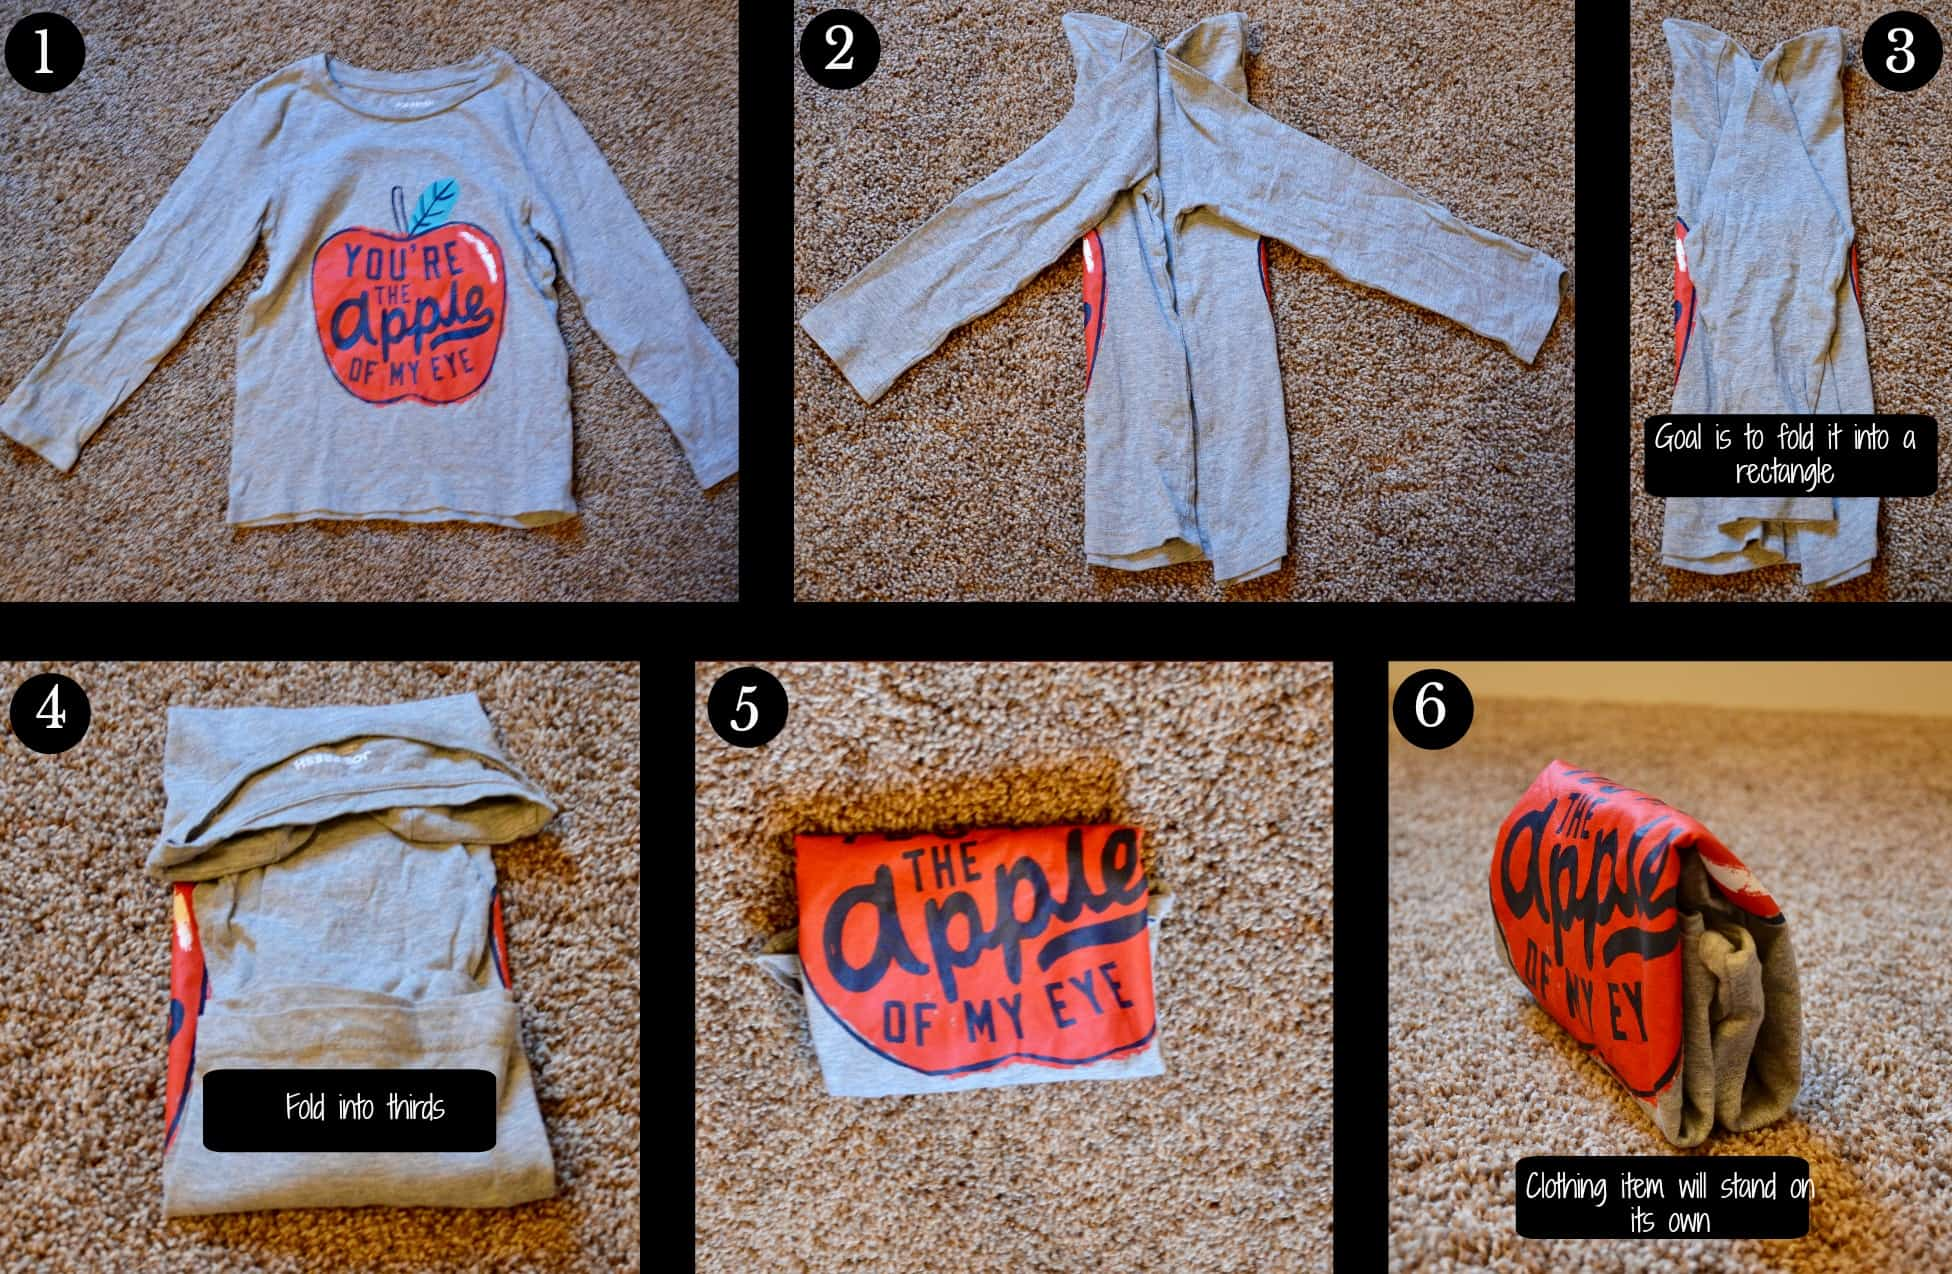 Step by step picture of how to fold a tshirt using the vertical filing procecc.